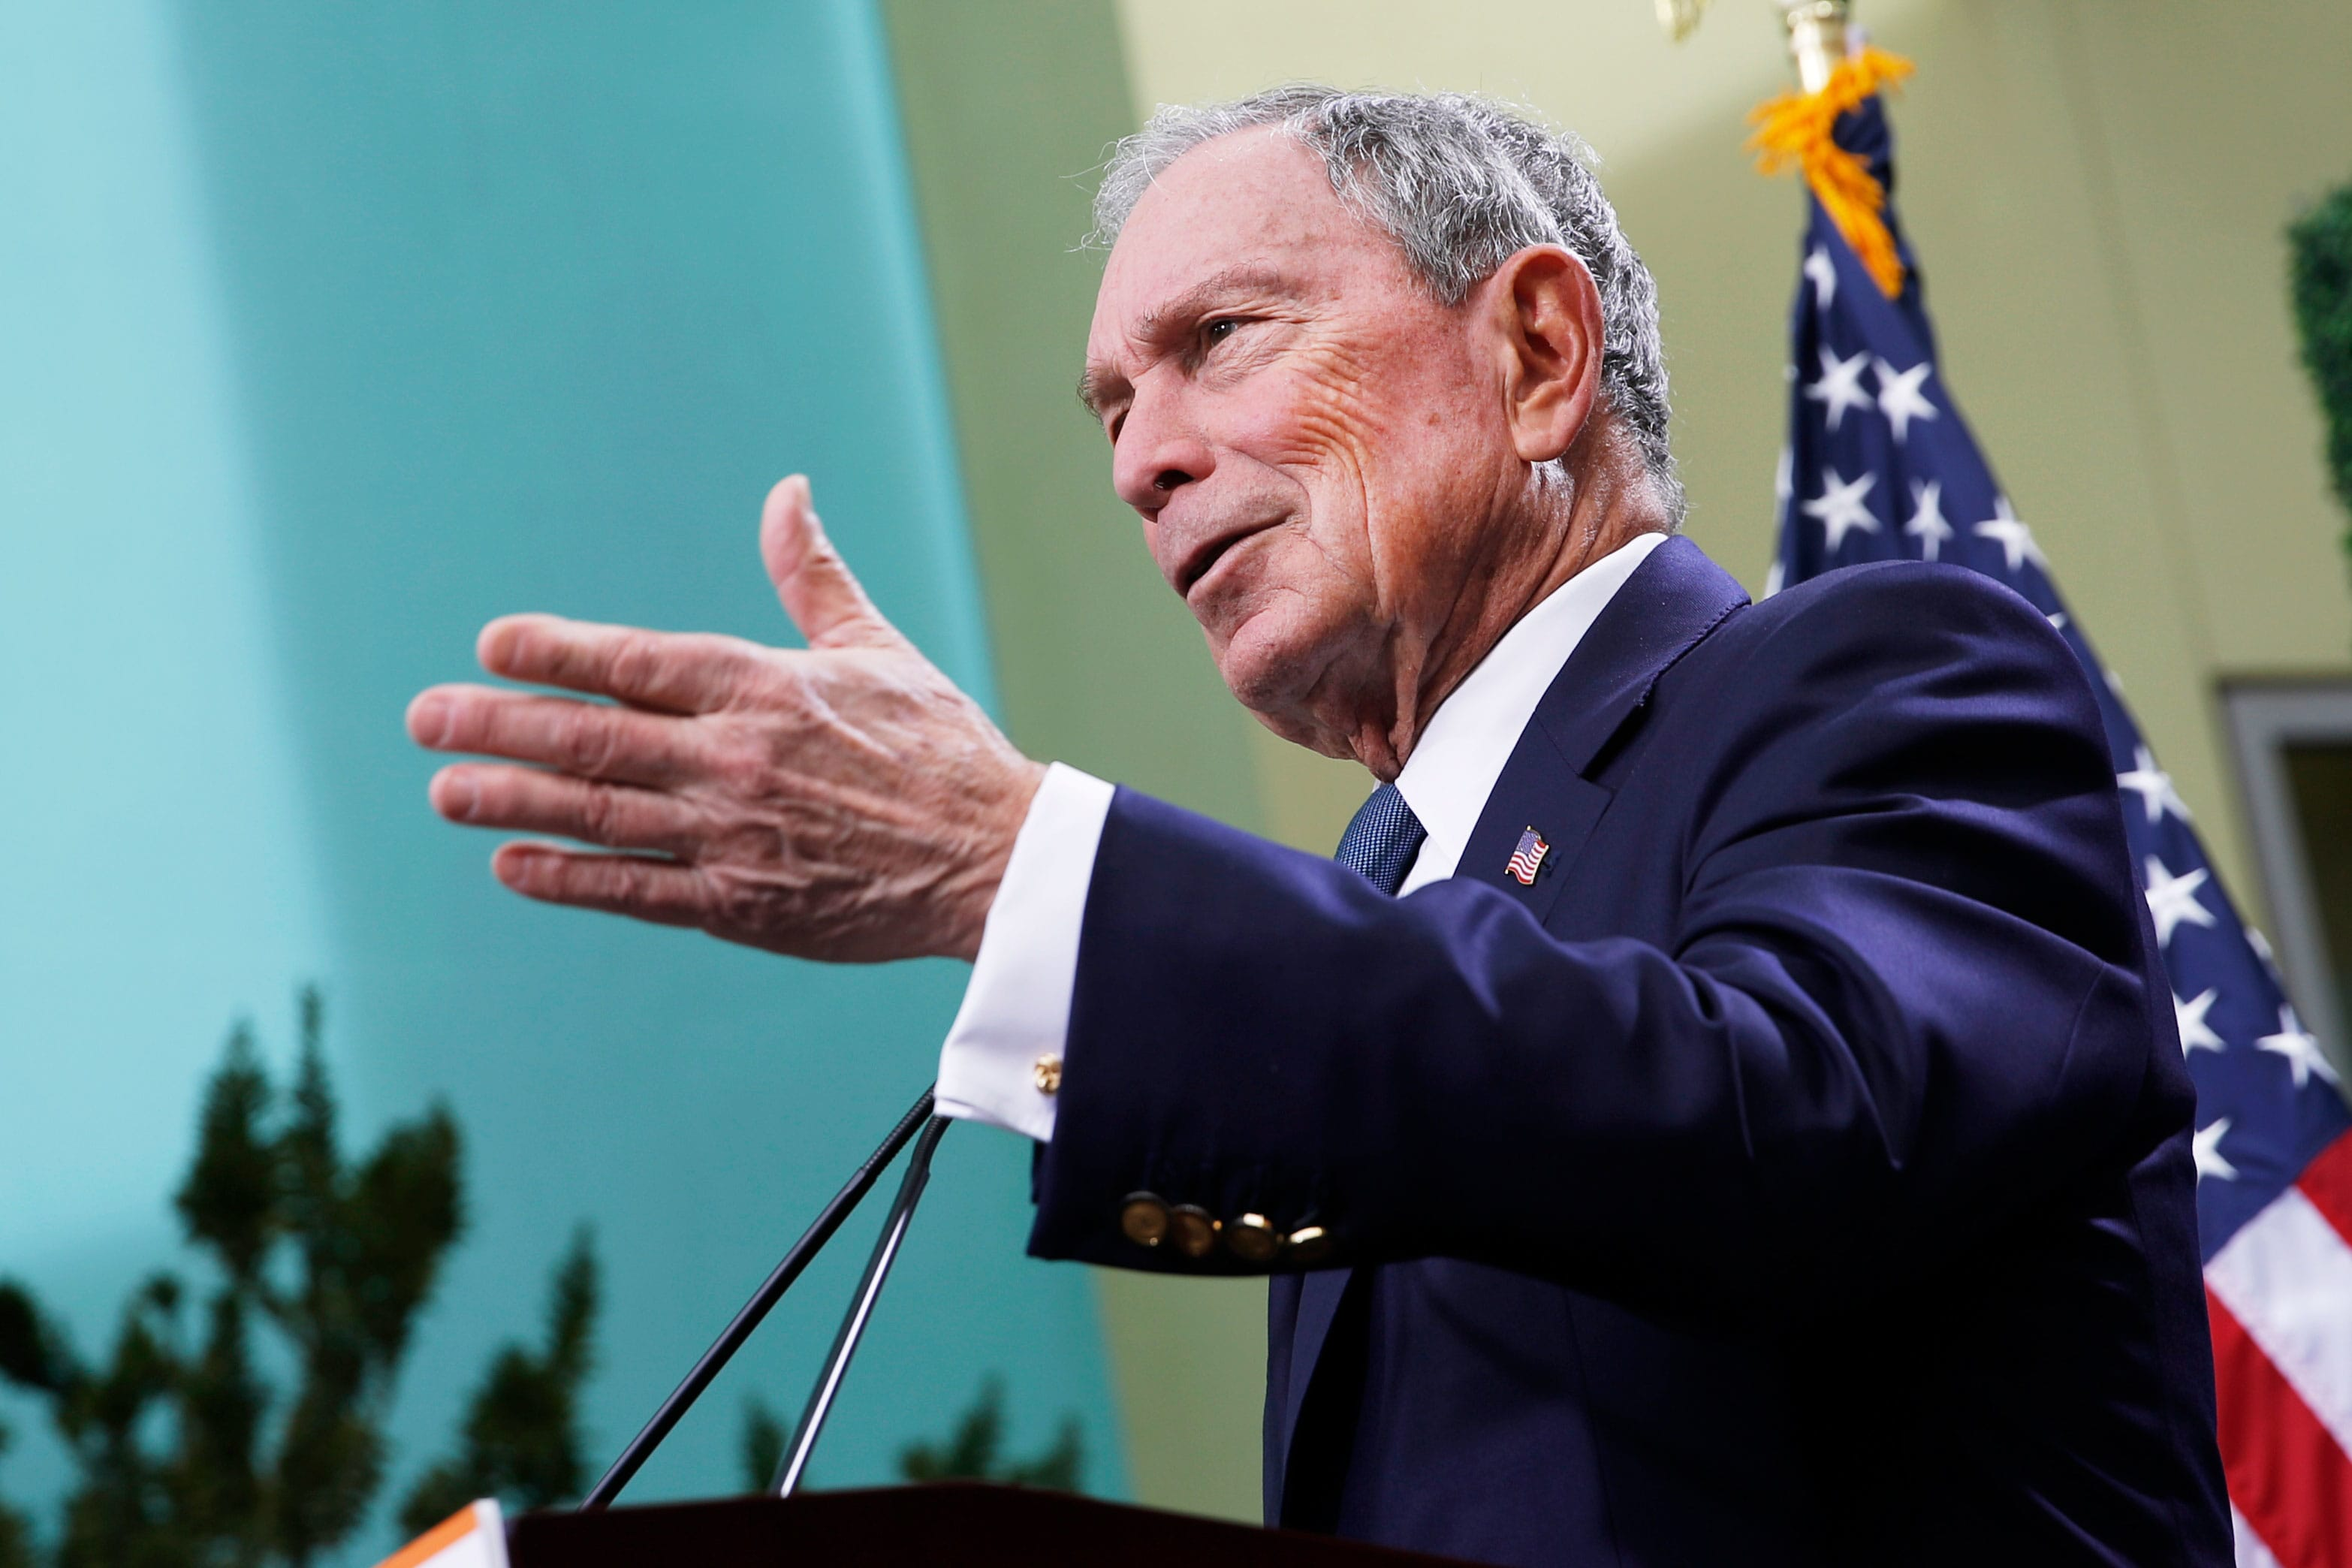 Pollster: 'Mike Bloomberg has more money than God,' so he can be a 2020 contender any time